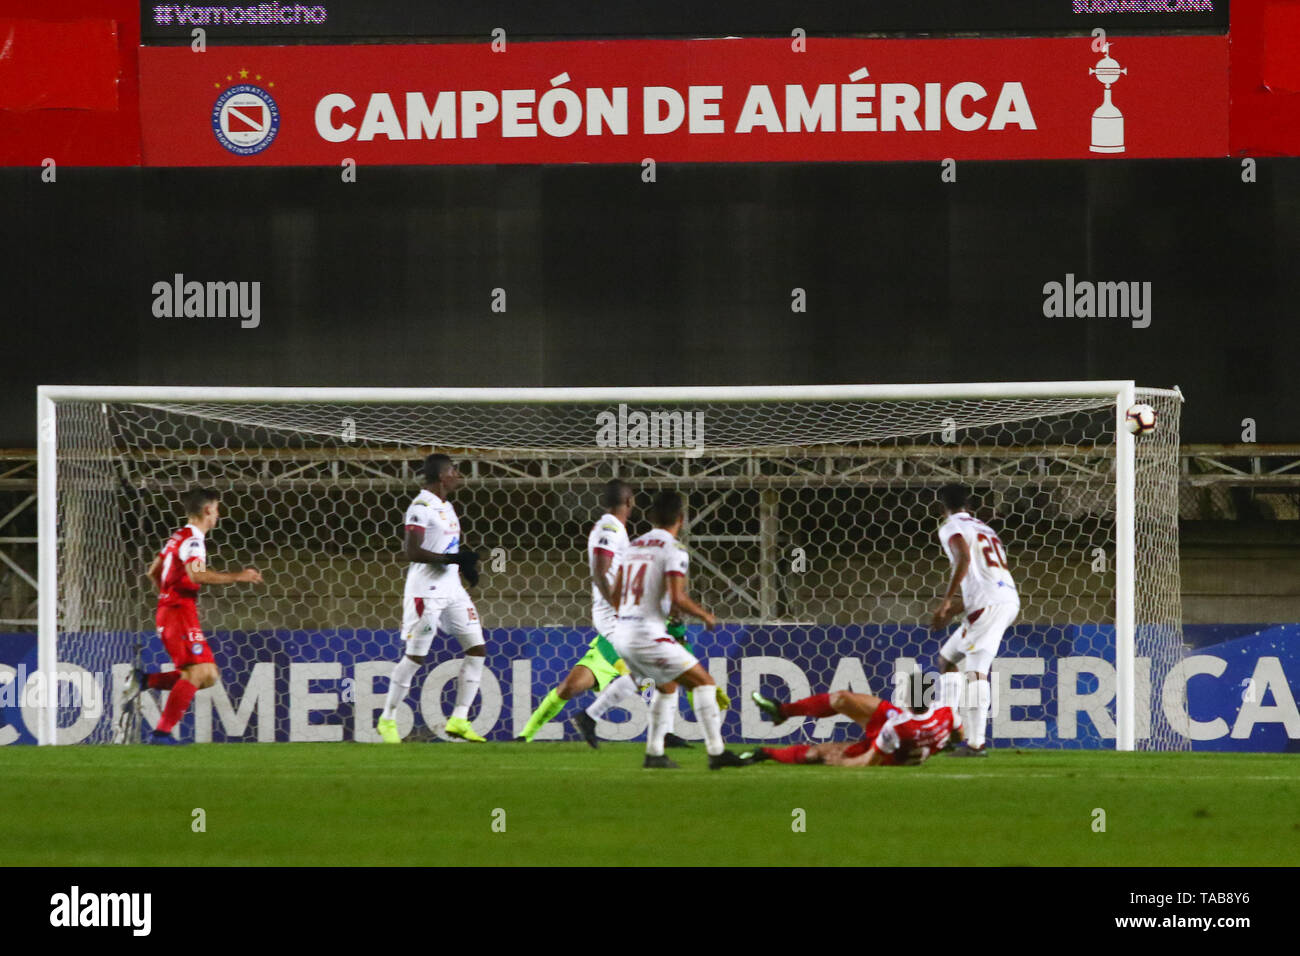 BUENOS AIRES, 23.05.2019: Gabriel Hauche shoots  during the match between Argentinos Juniors and Deportes Tolima for the 2nd round of Conmebol Sudamer - Stock Image